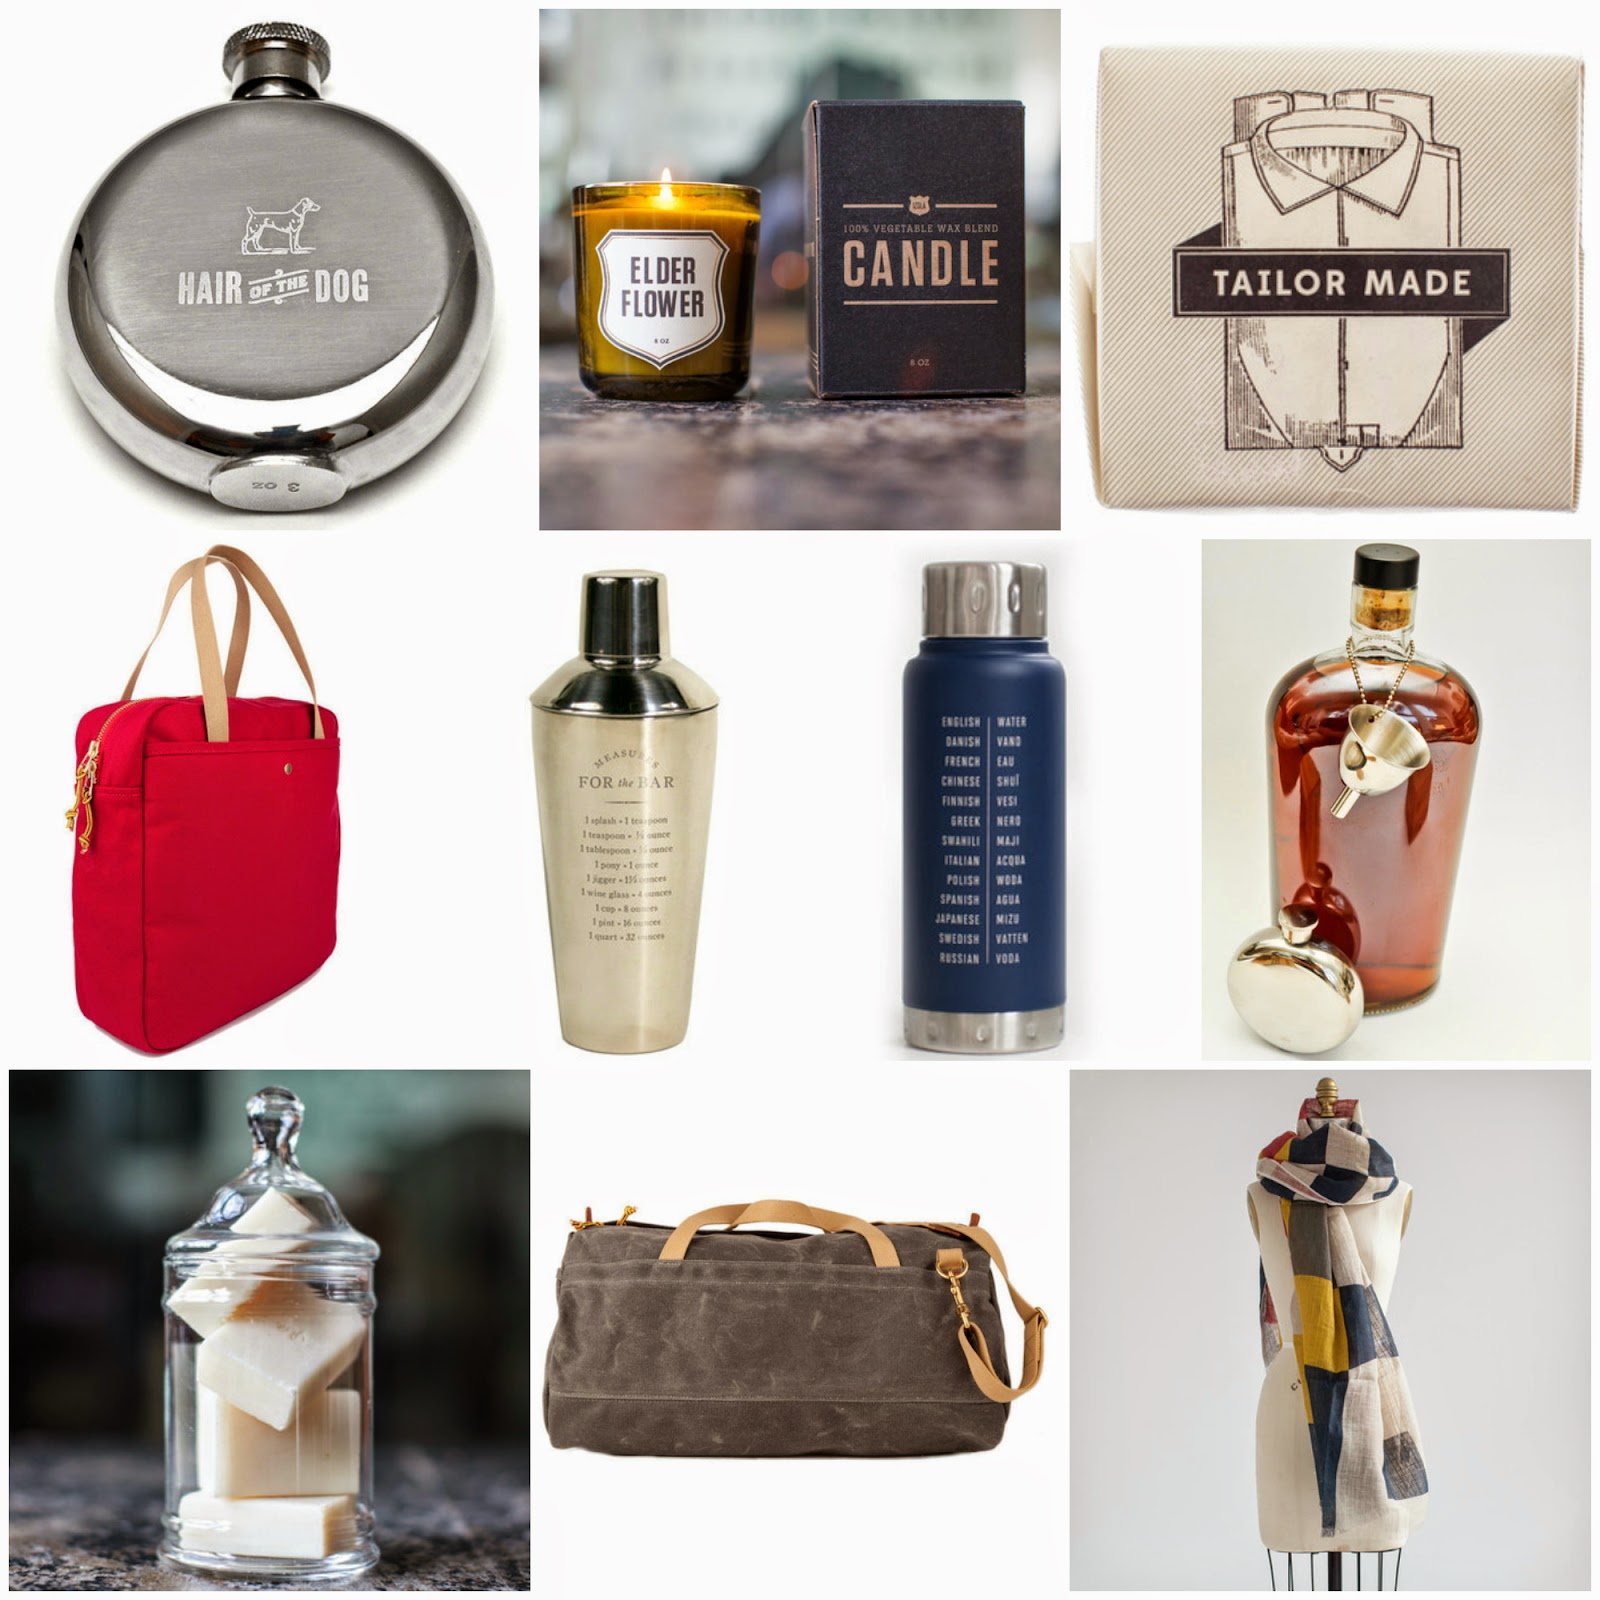 Wedding Party Gifts For Bride And Groom : ... wedding gift ideas for bride from groom modern brides grooms the party